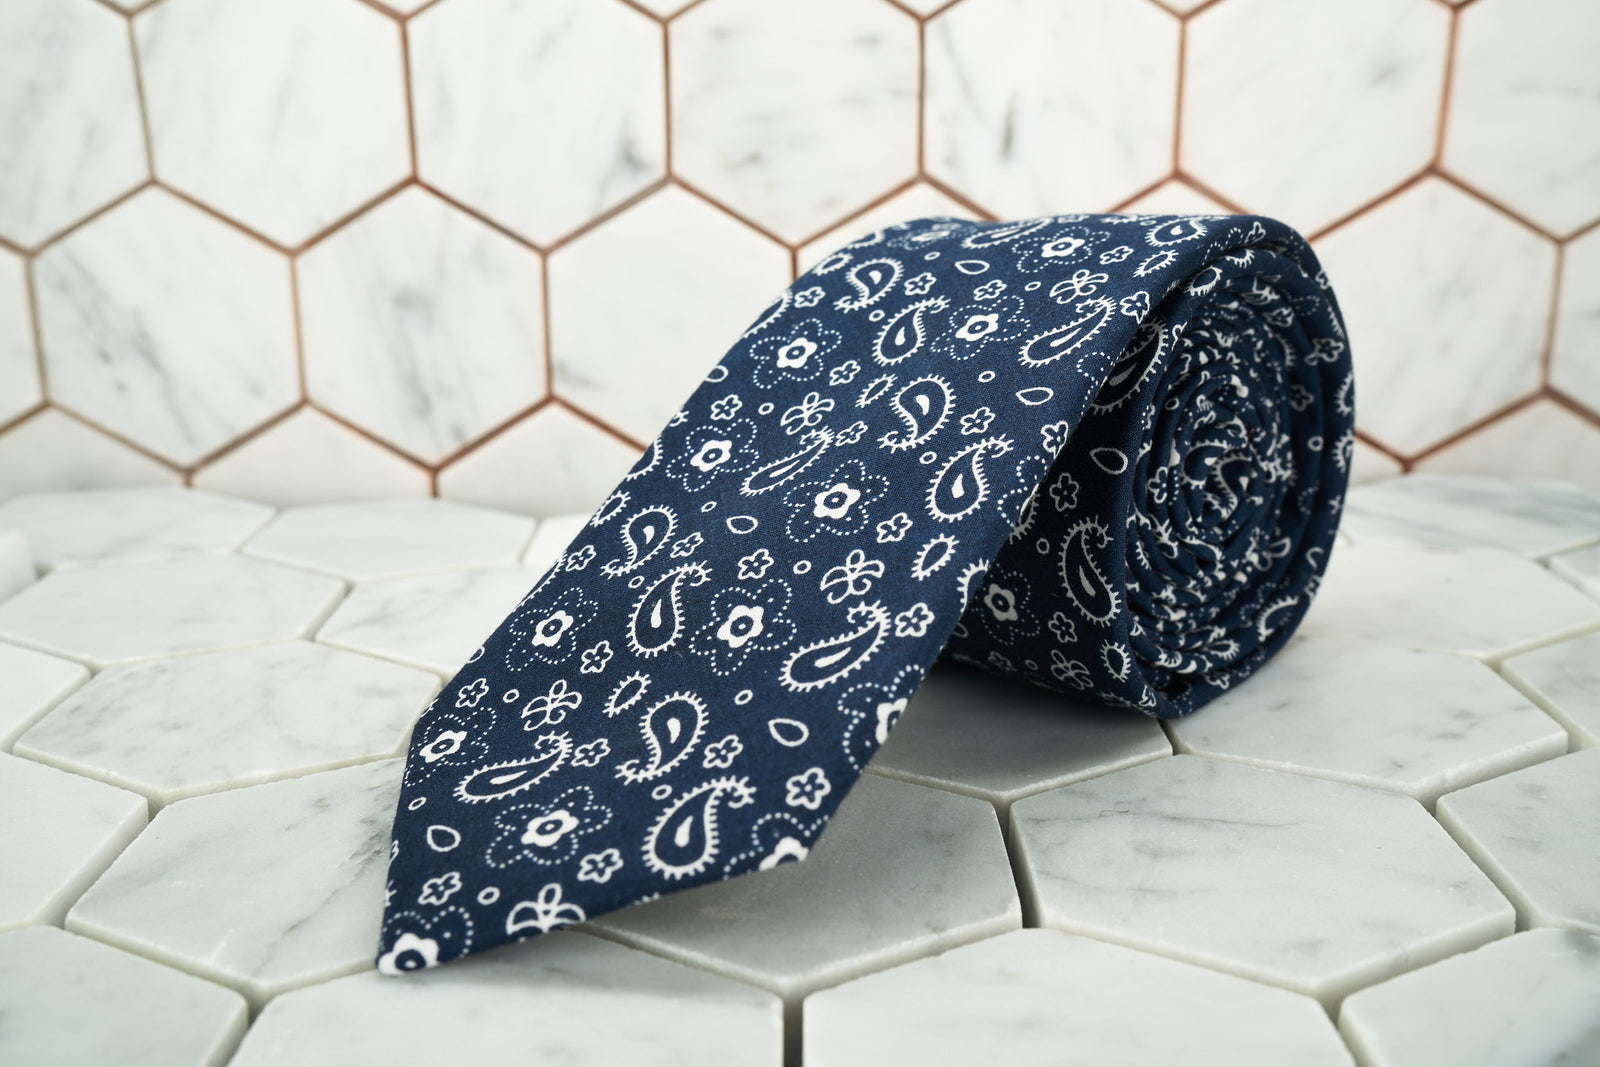 A paisley navy patterned necktie by Dear Martian, is named the Cowboy and rolled up against a white background.